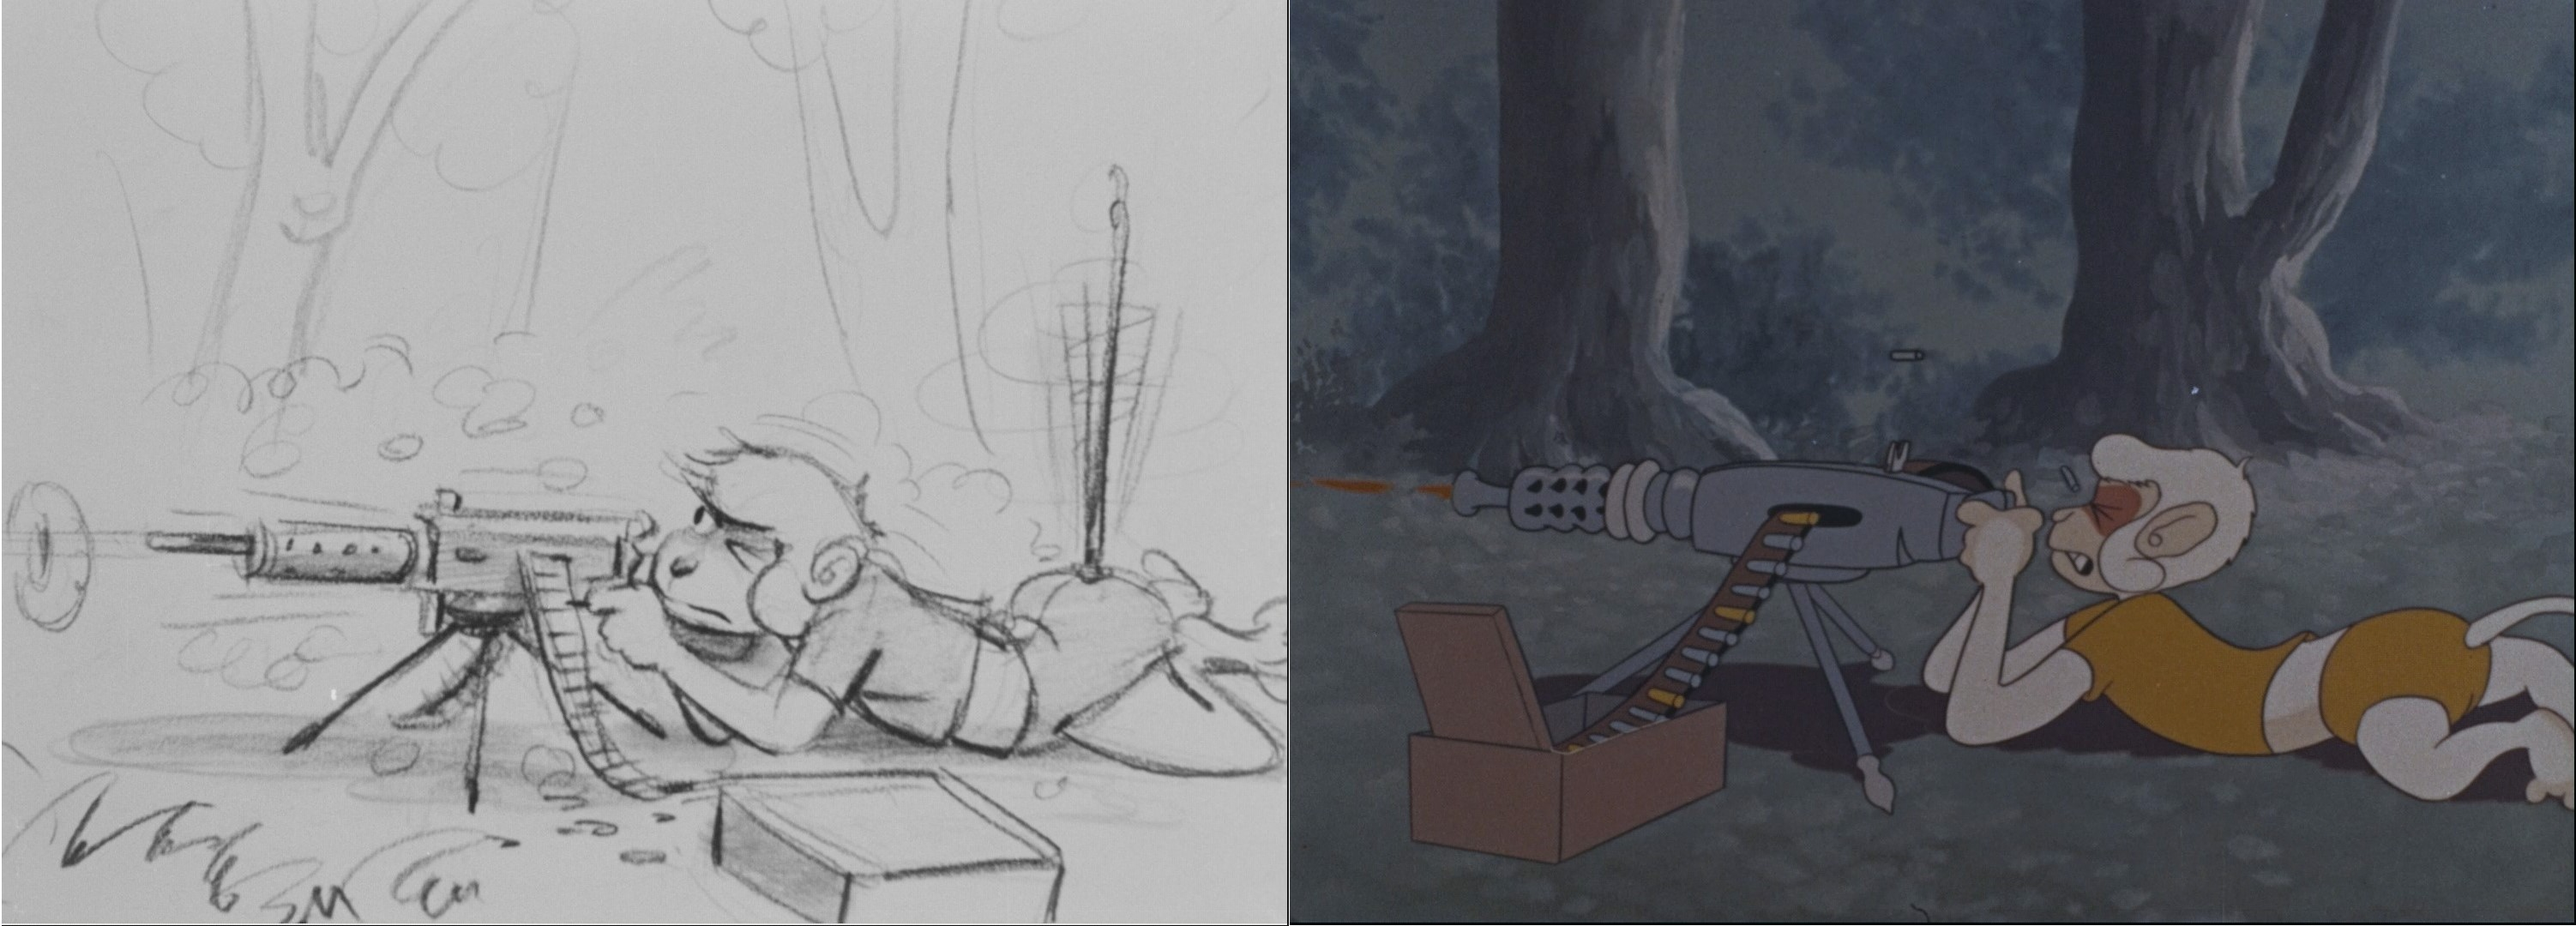 A storyboard image alongside the final product. (Source: 306.2091A and 306.2091)